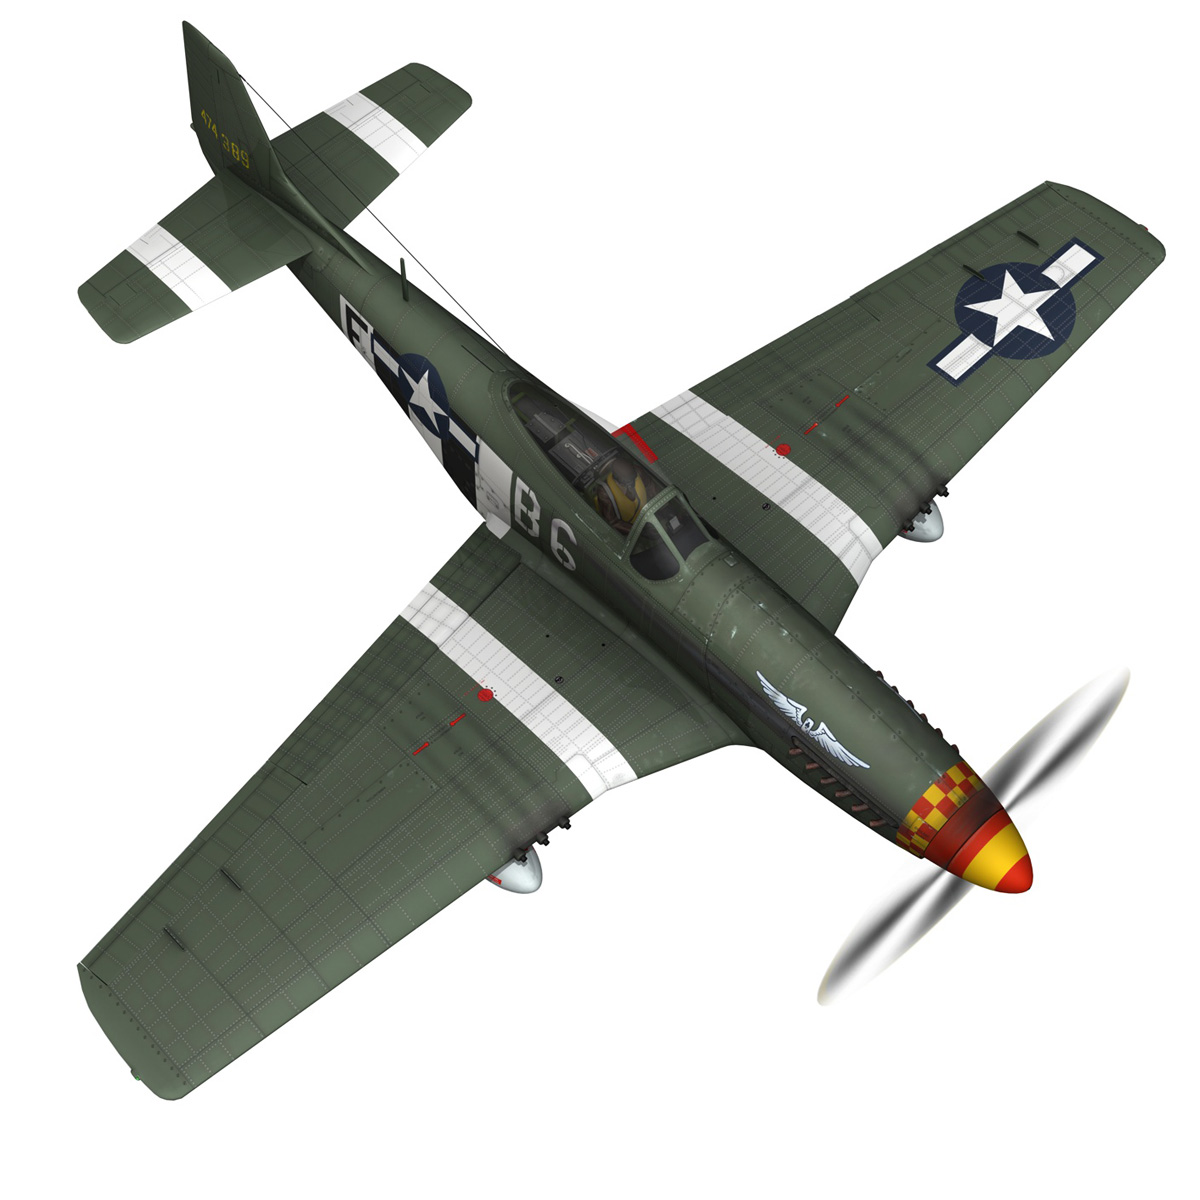 north american p-51d mustang – speedball alice 3d model fbx c4d lwo obj 280318